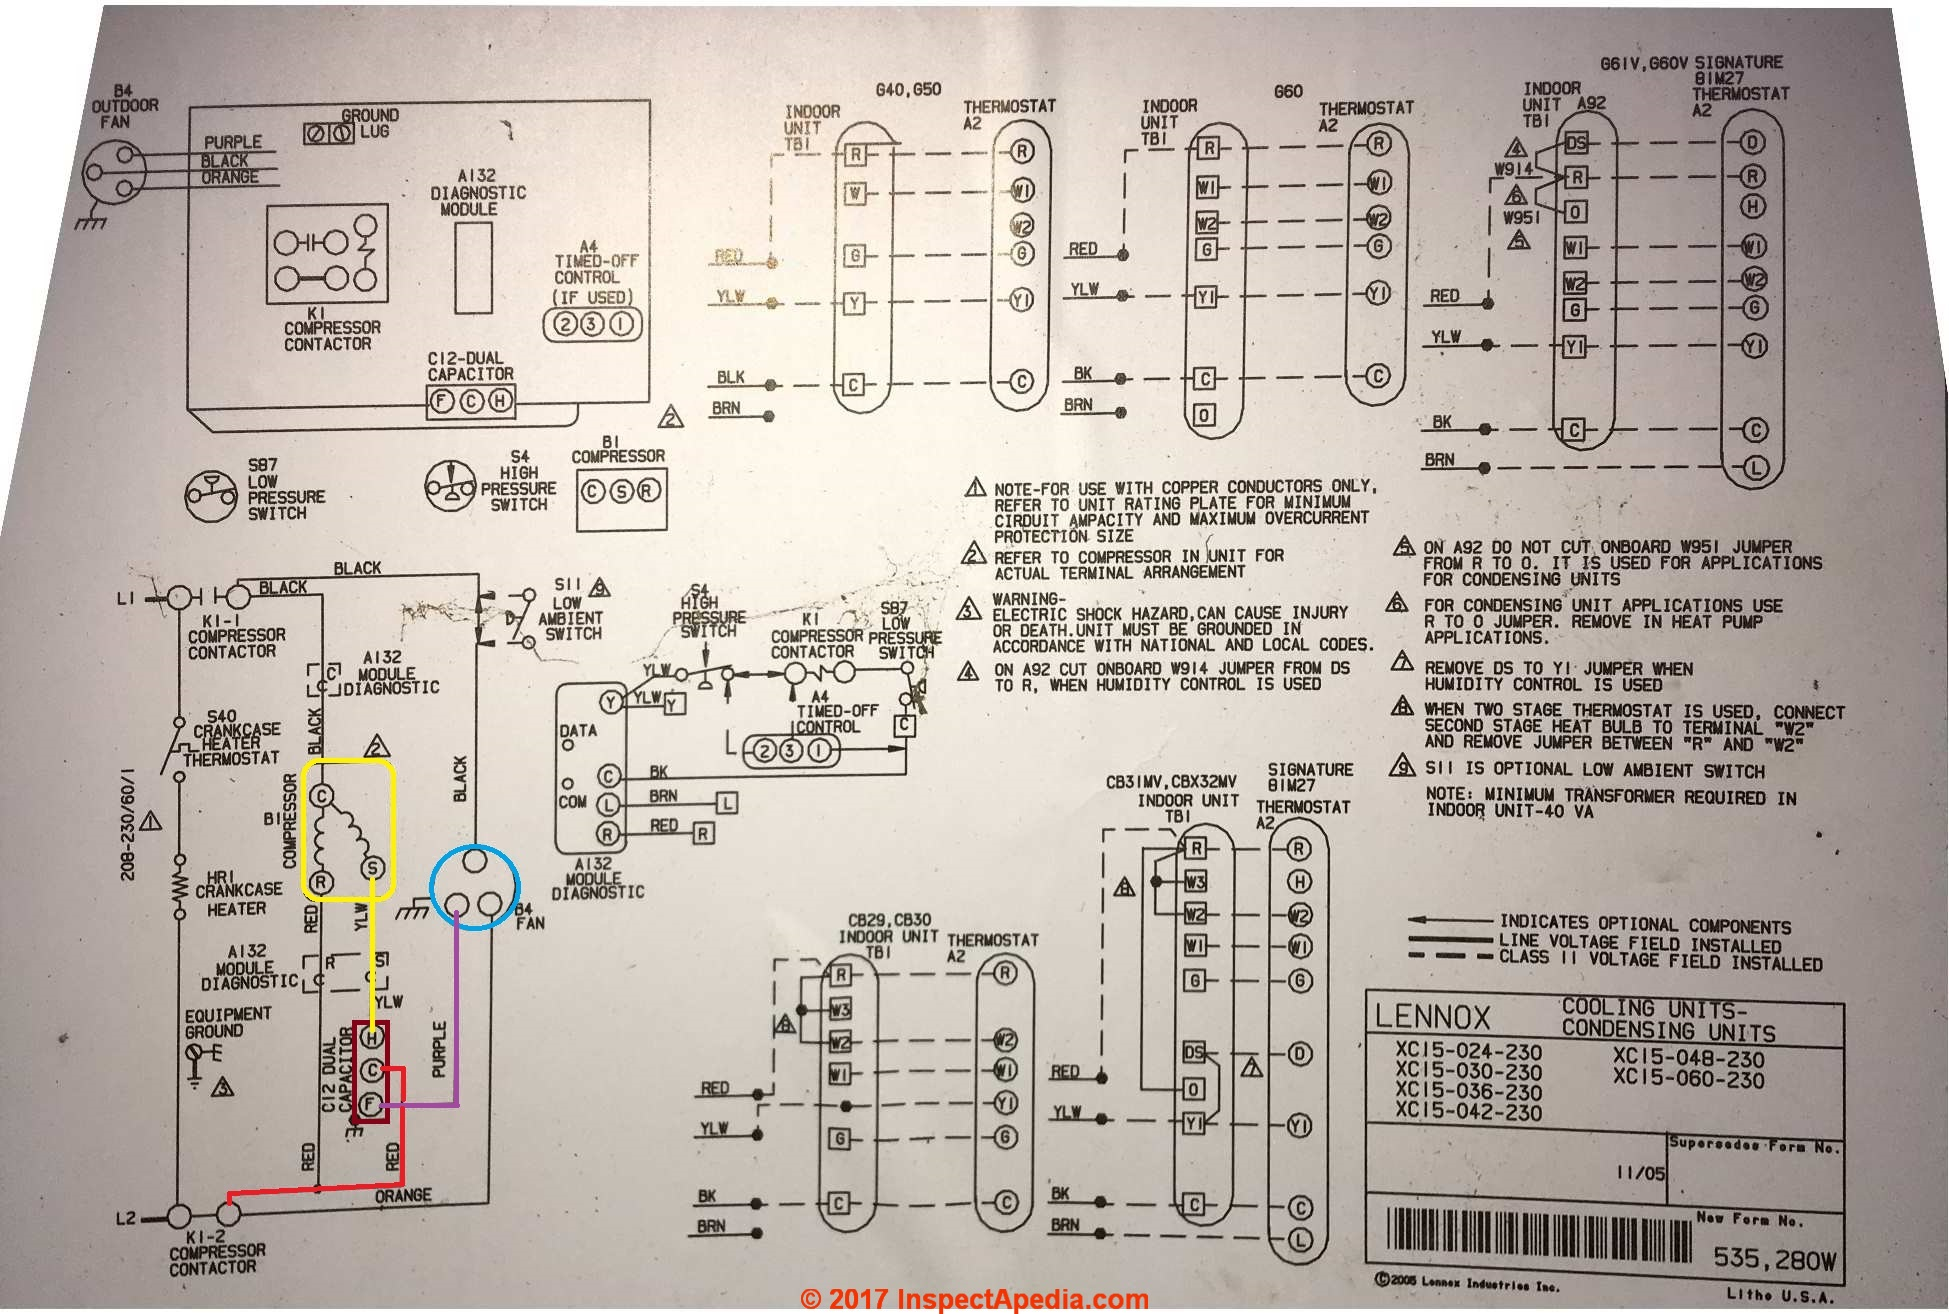 Electric Motor Starting Run Capacitor Types Installation Guide To Wiring Diagram A C Condenser Parts Lennox Xc15 Unit Showing Connections